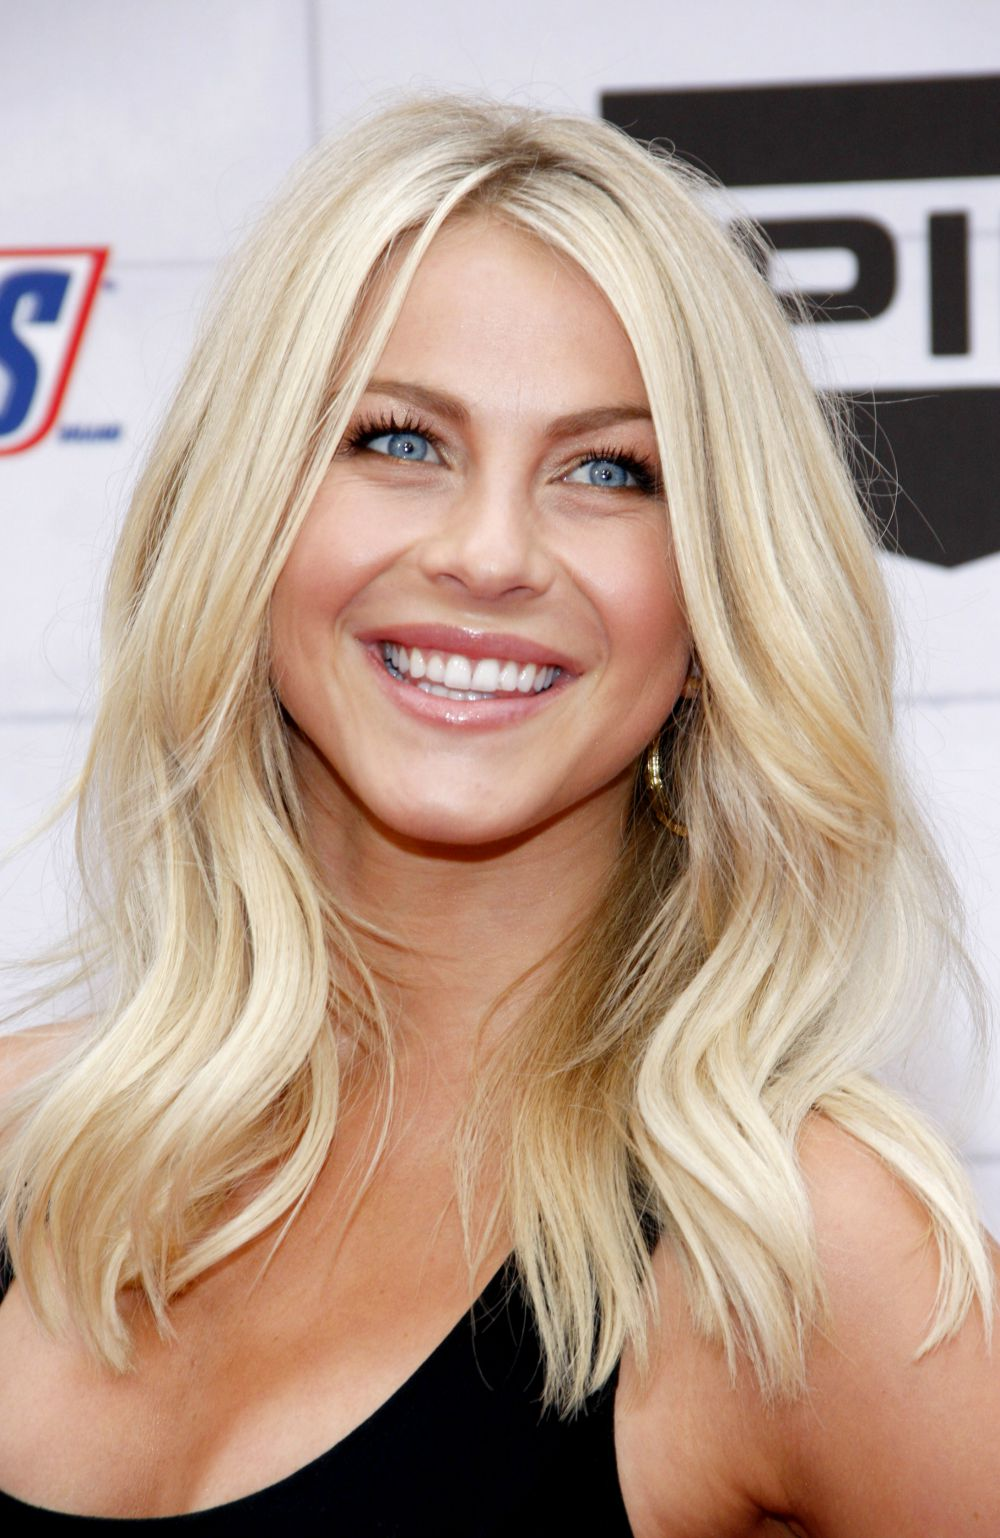 julianne hough hair styles 31 gorgeous photos of julianne hough s hair fabulous 4763